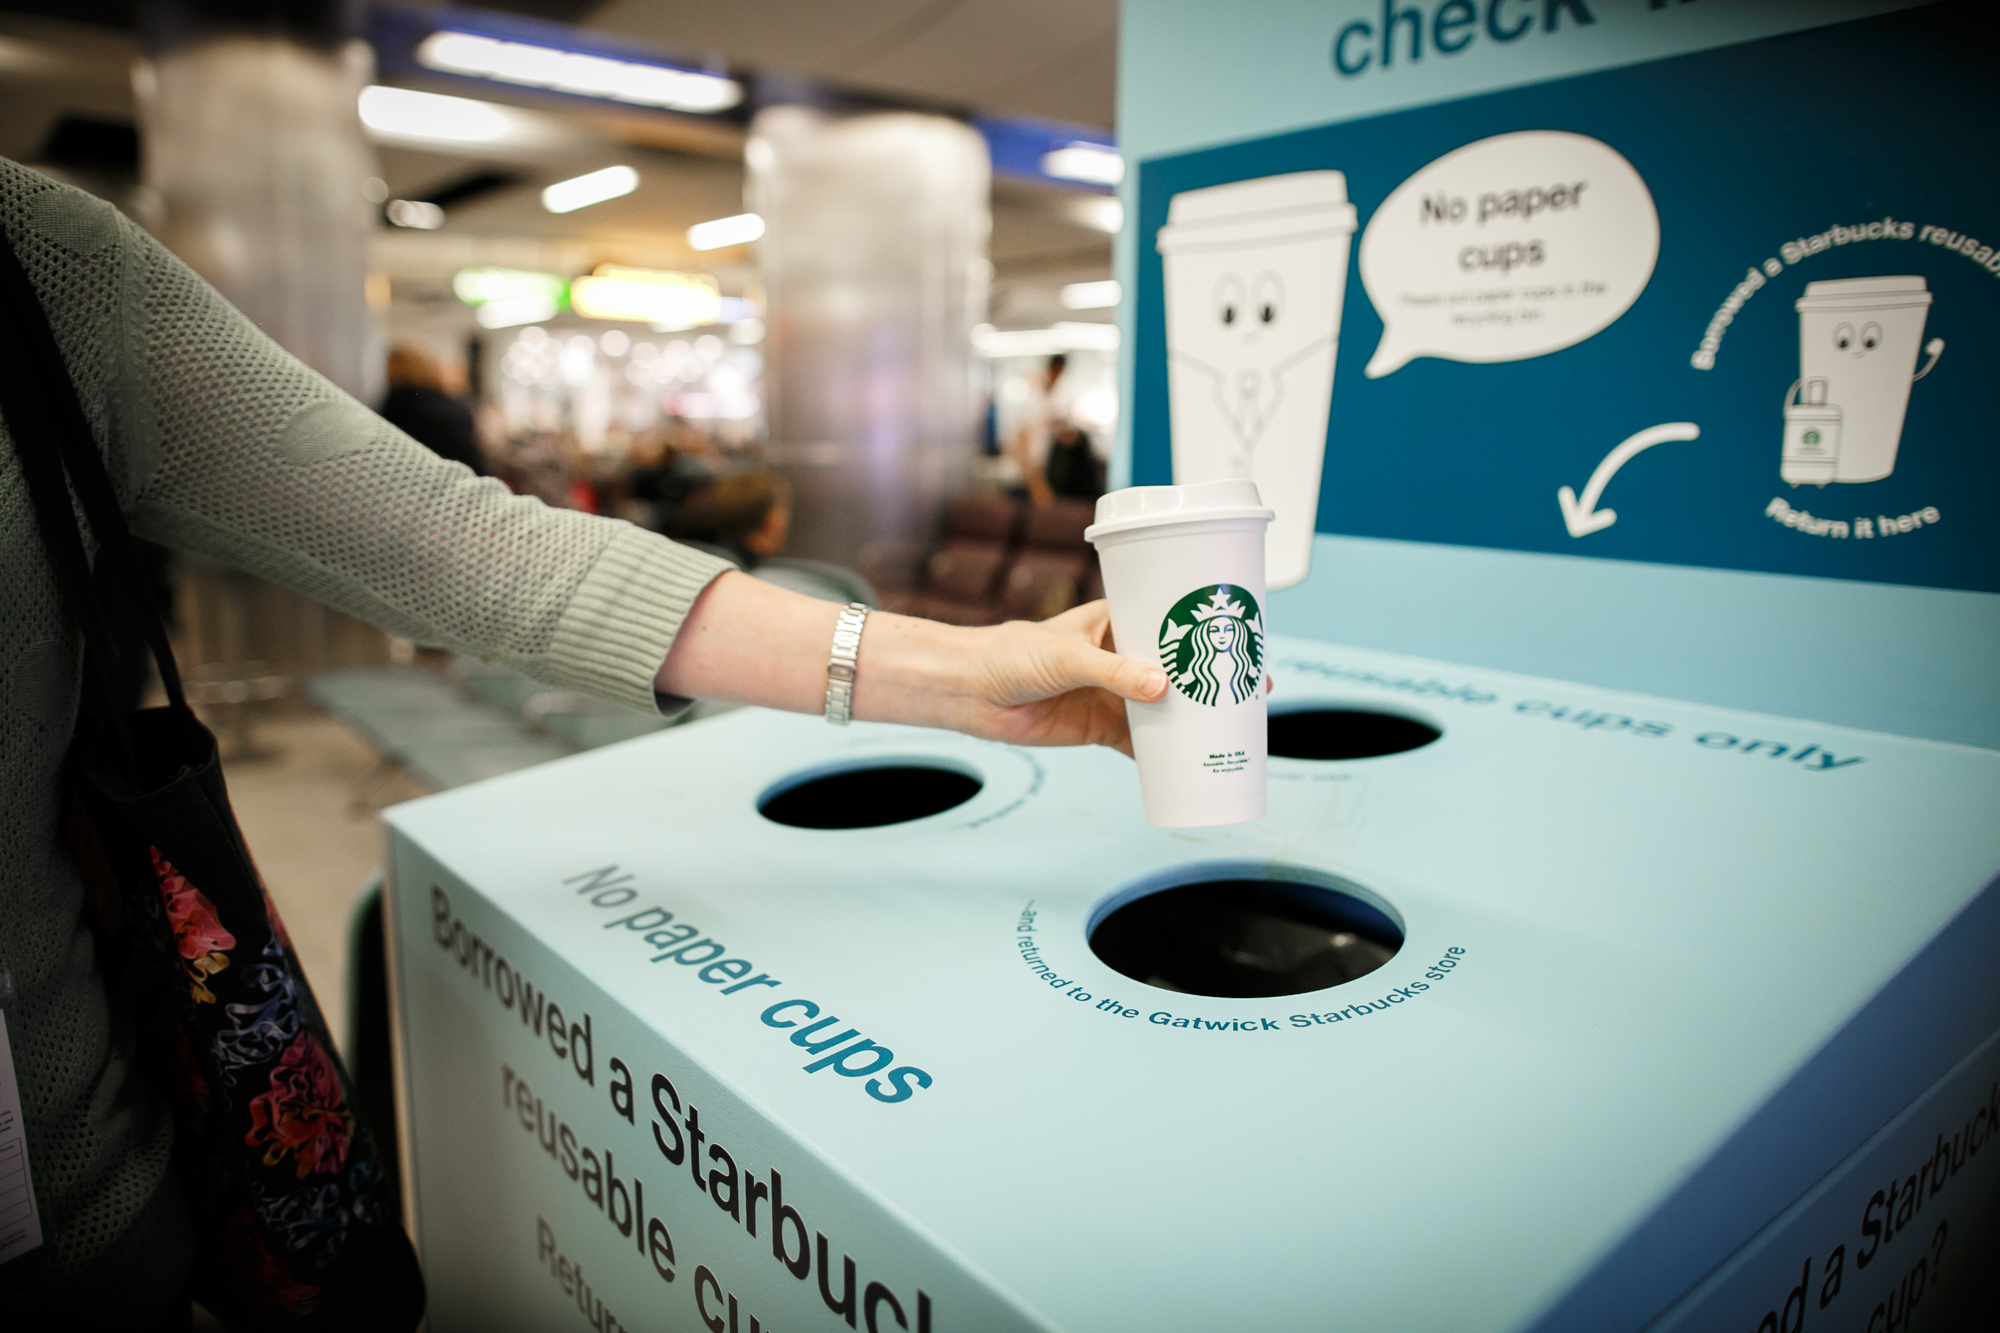 Starbucks UK launches first ever airport reusable cup trial